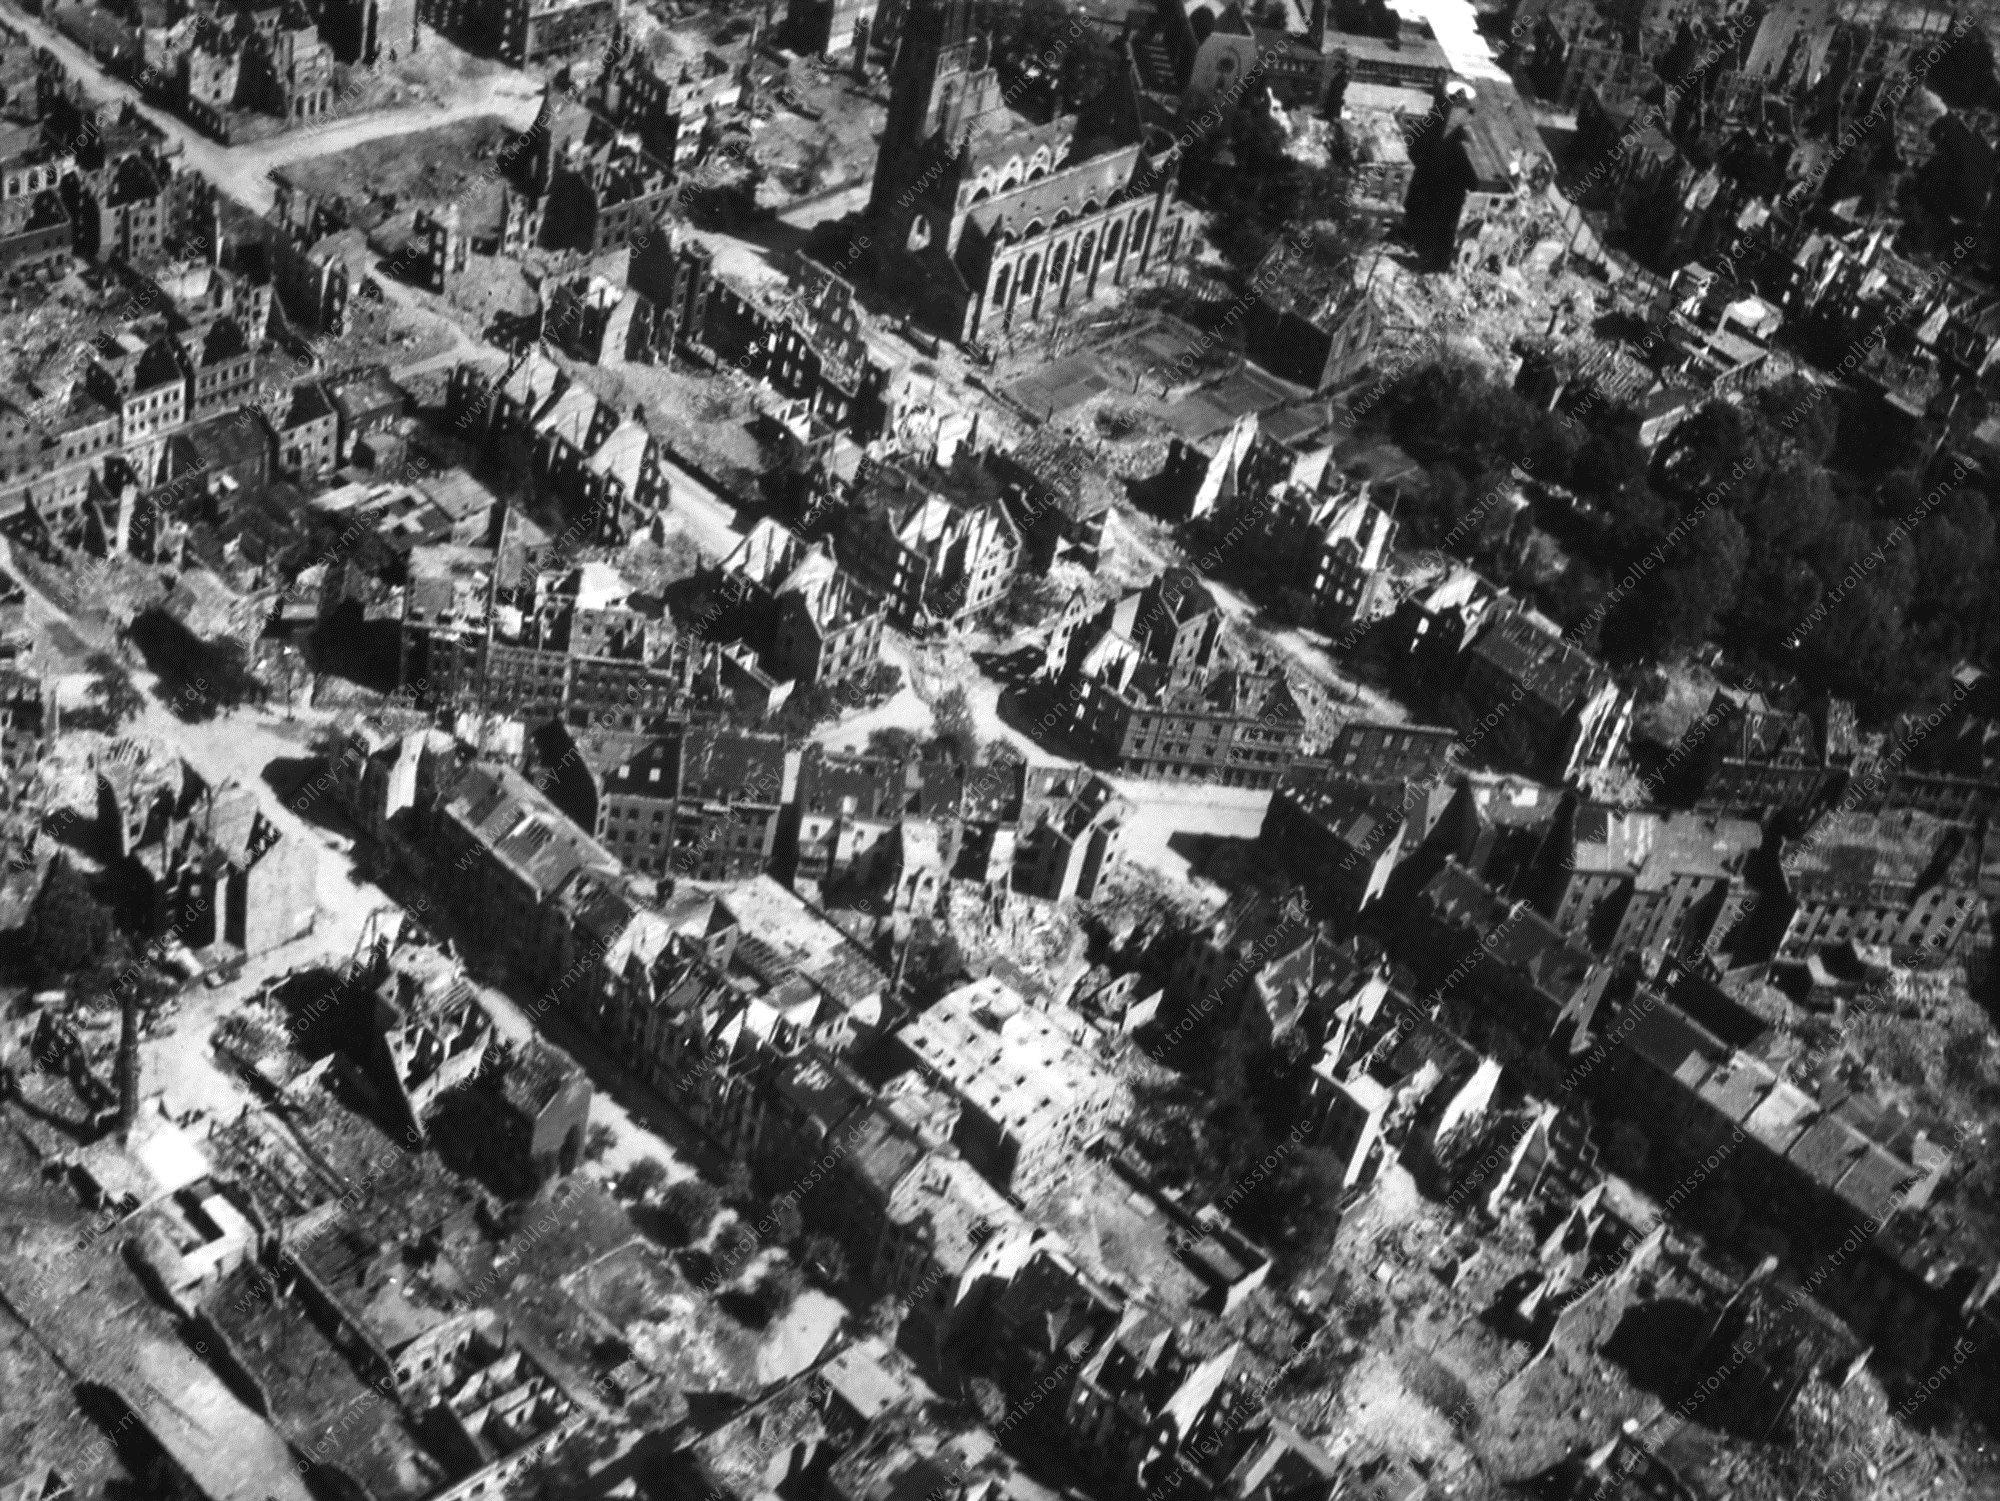 Dortmund from above: Aerial view after Allied air raids in World War II